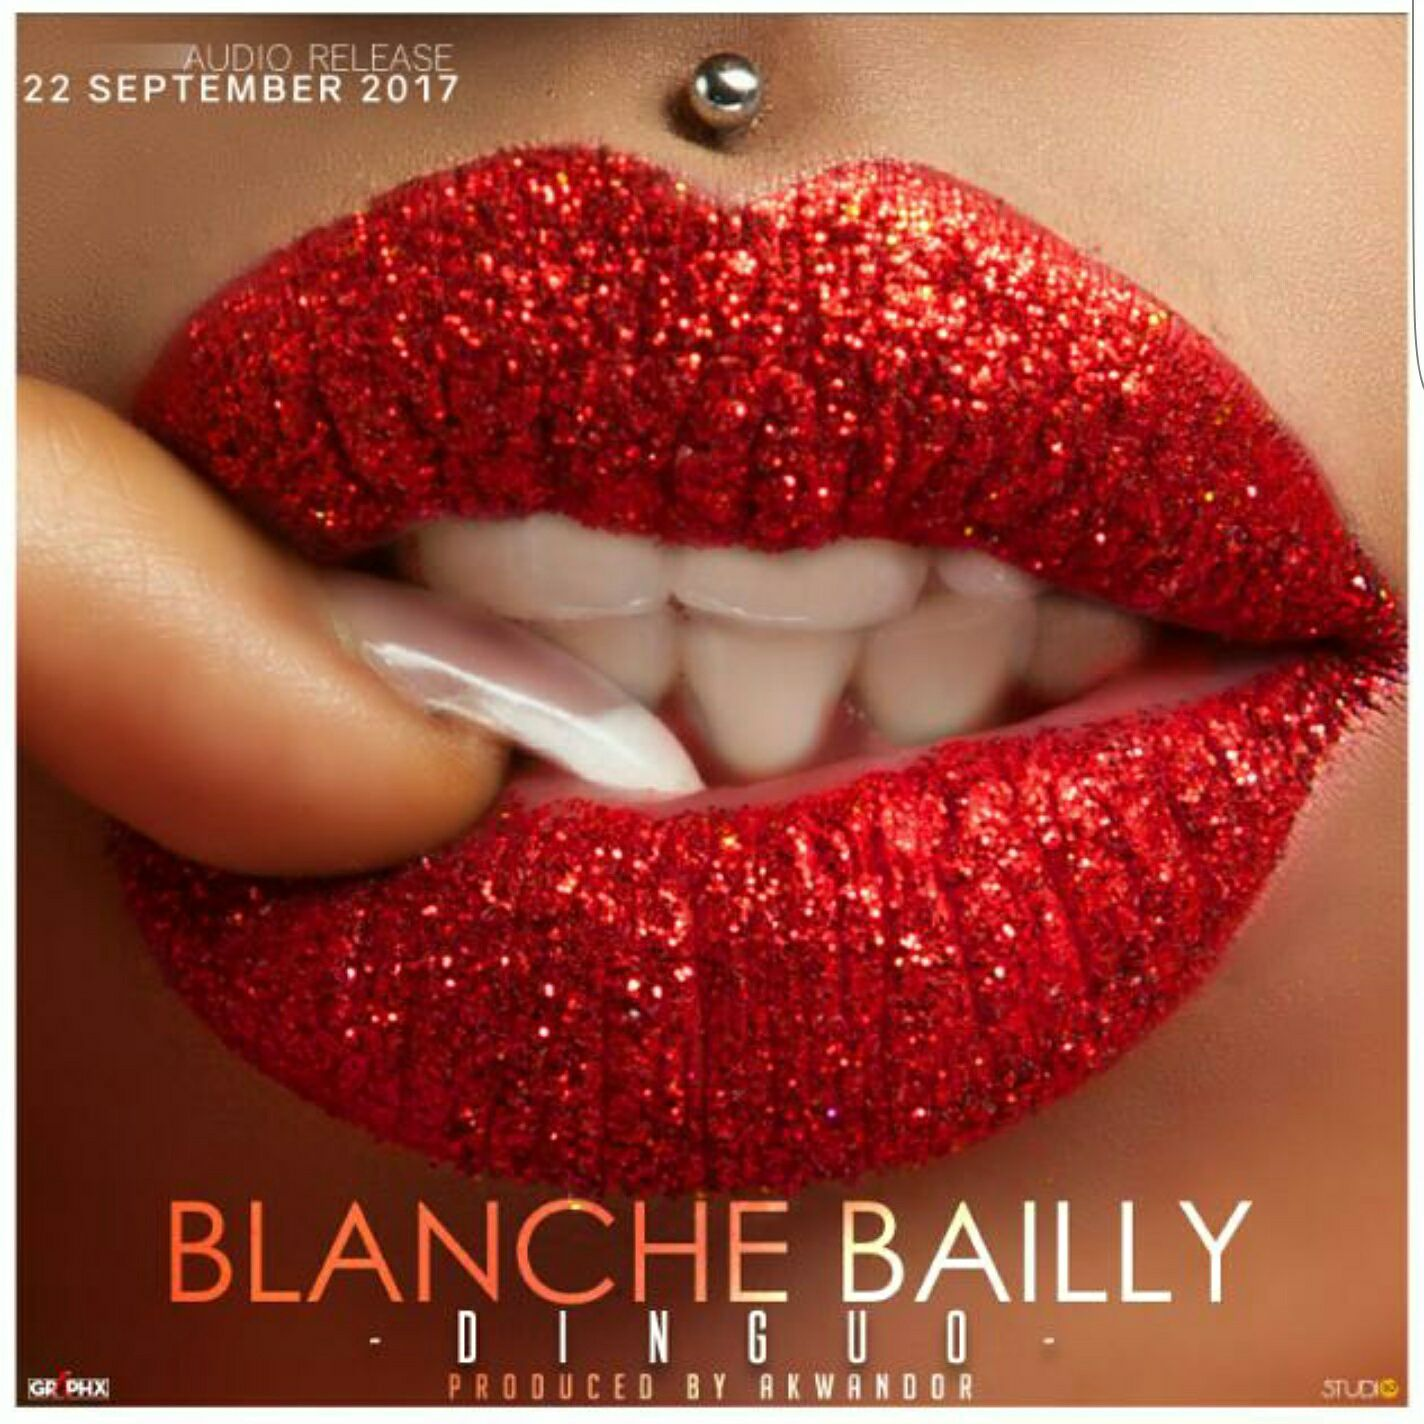 blanche bailly dinguo mp3